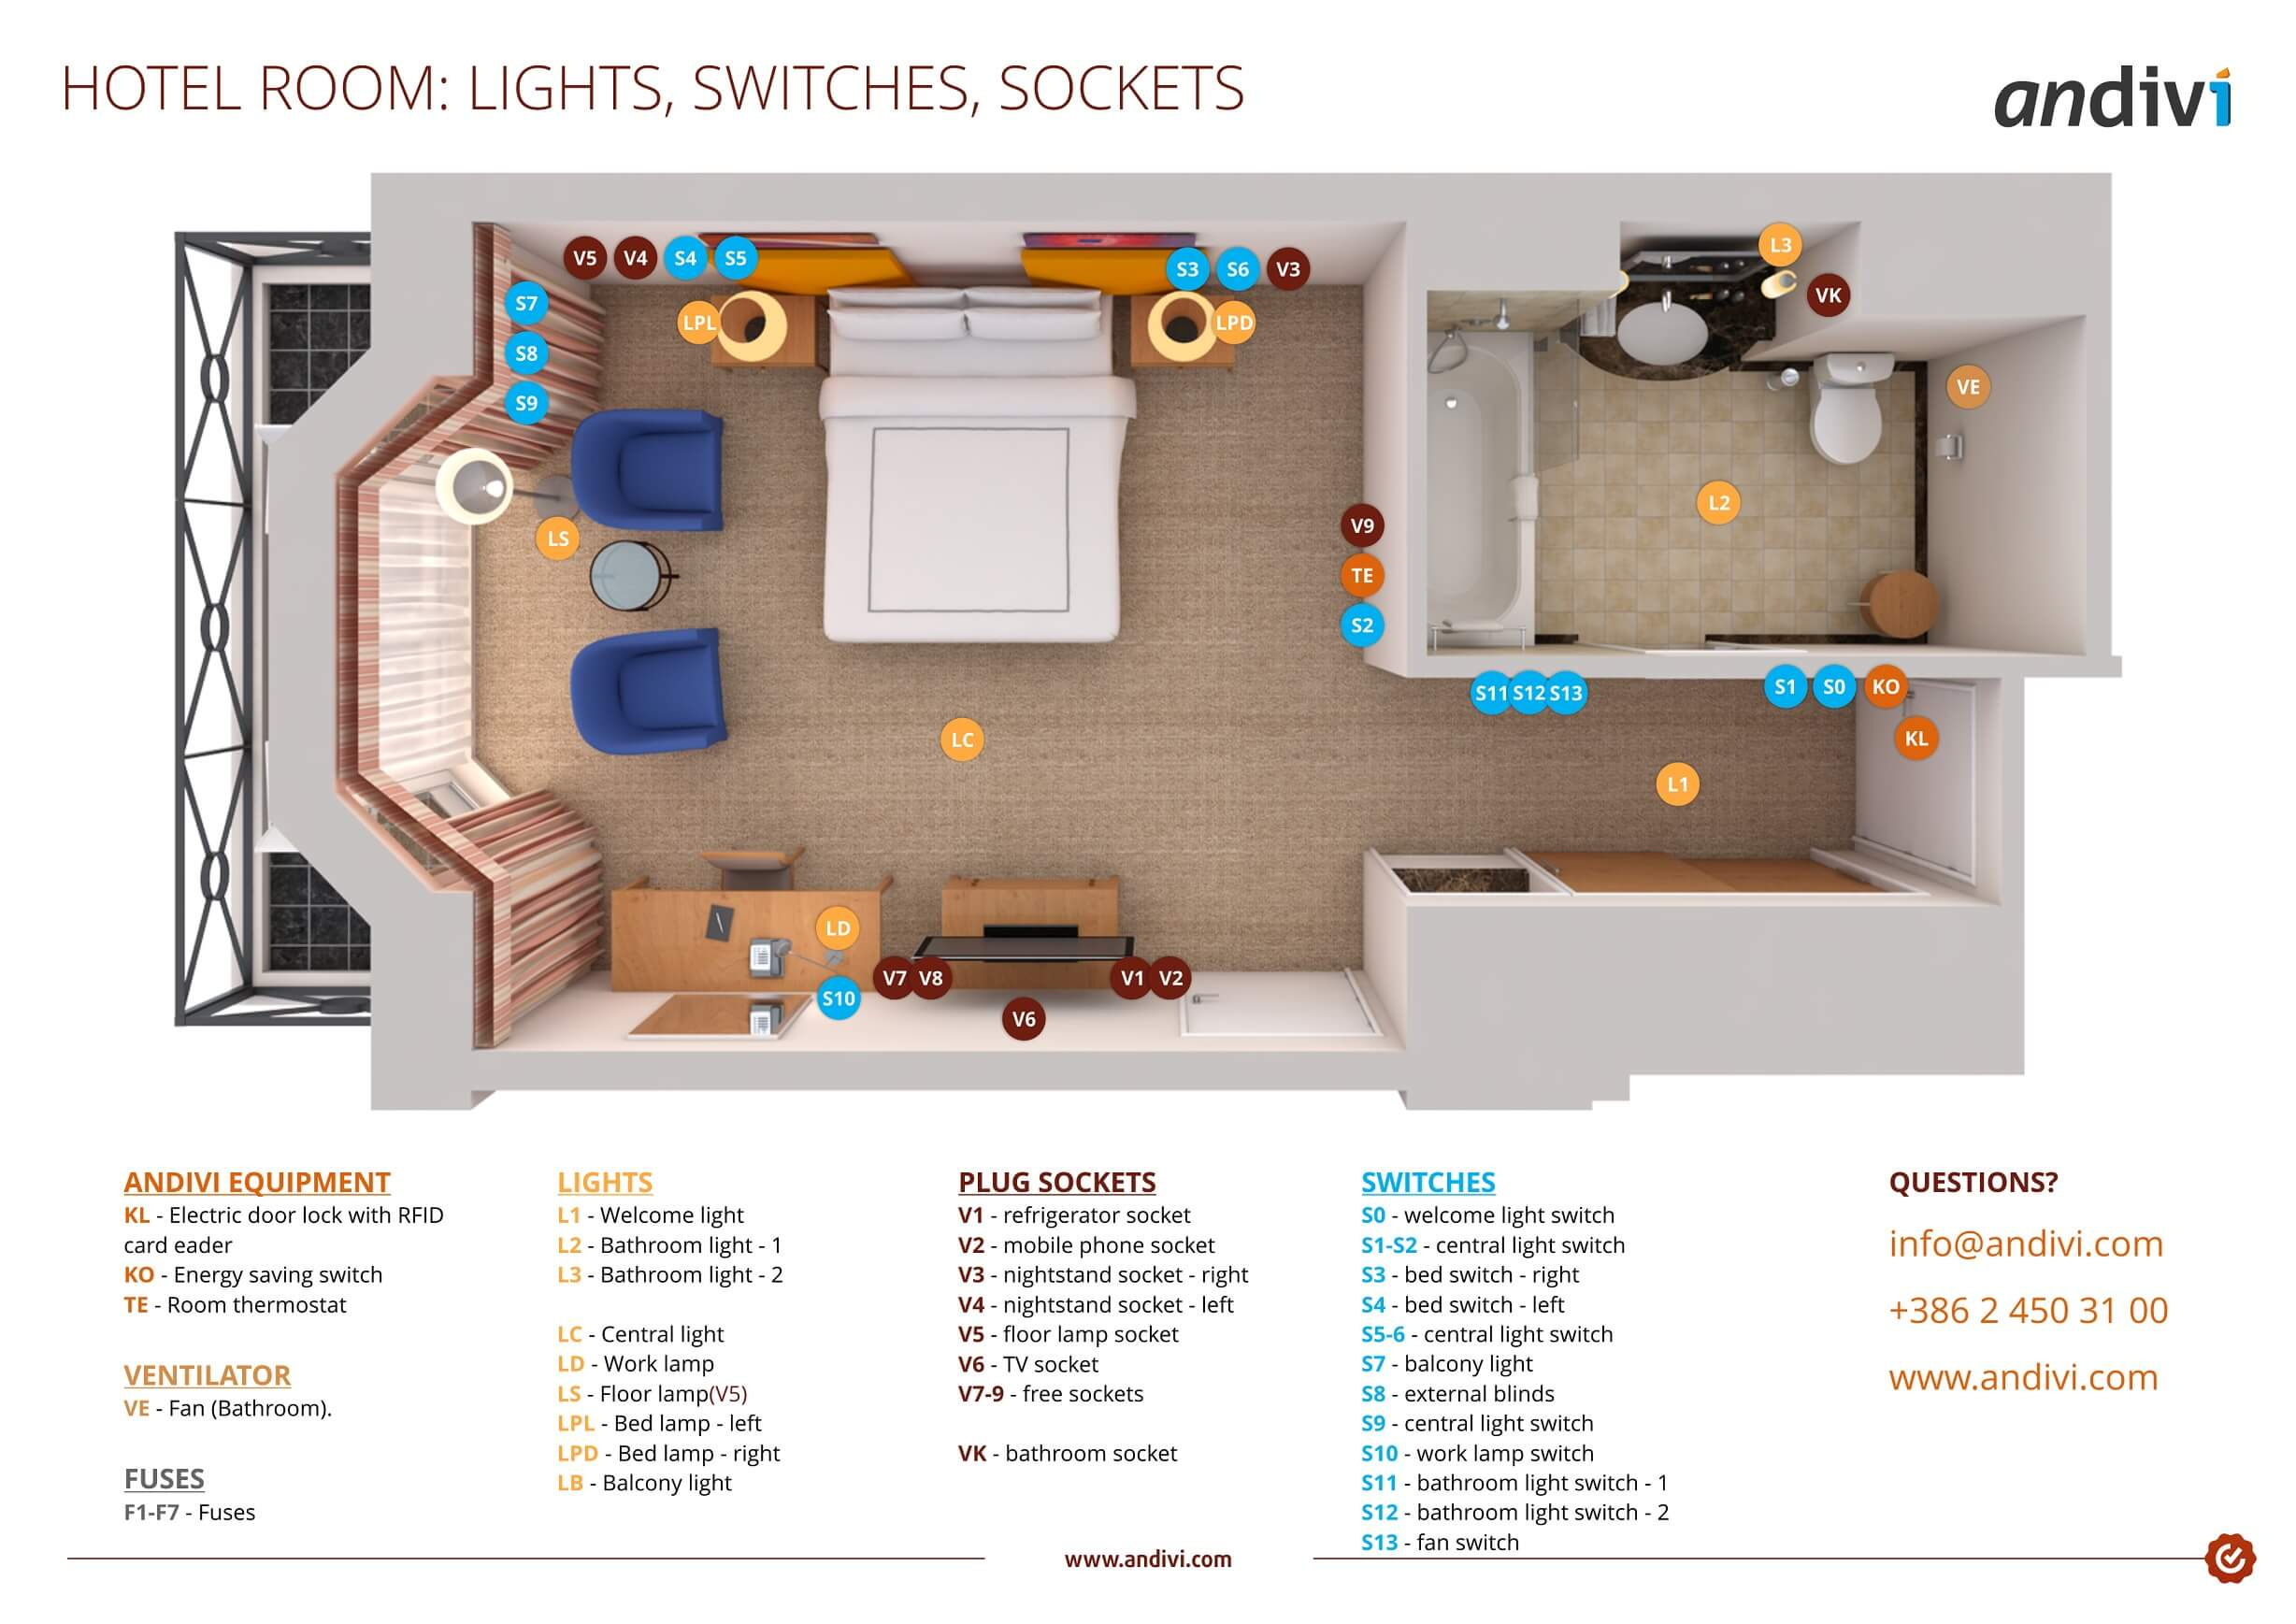 Electrical Installations Layout Plan For A Typical Hotel Basic Wiring Light Switch Installation Room Lights Sockets Switches